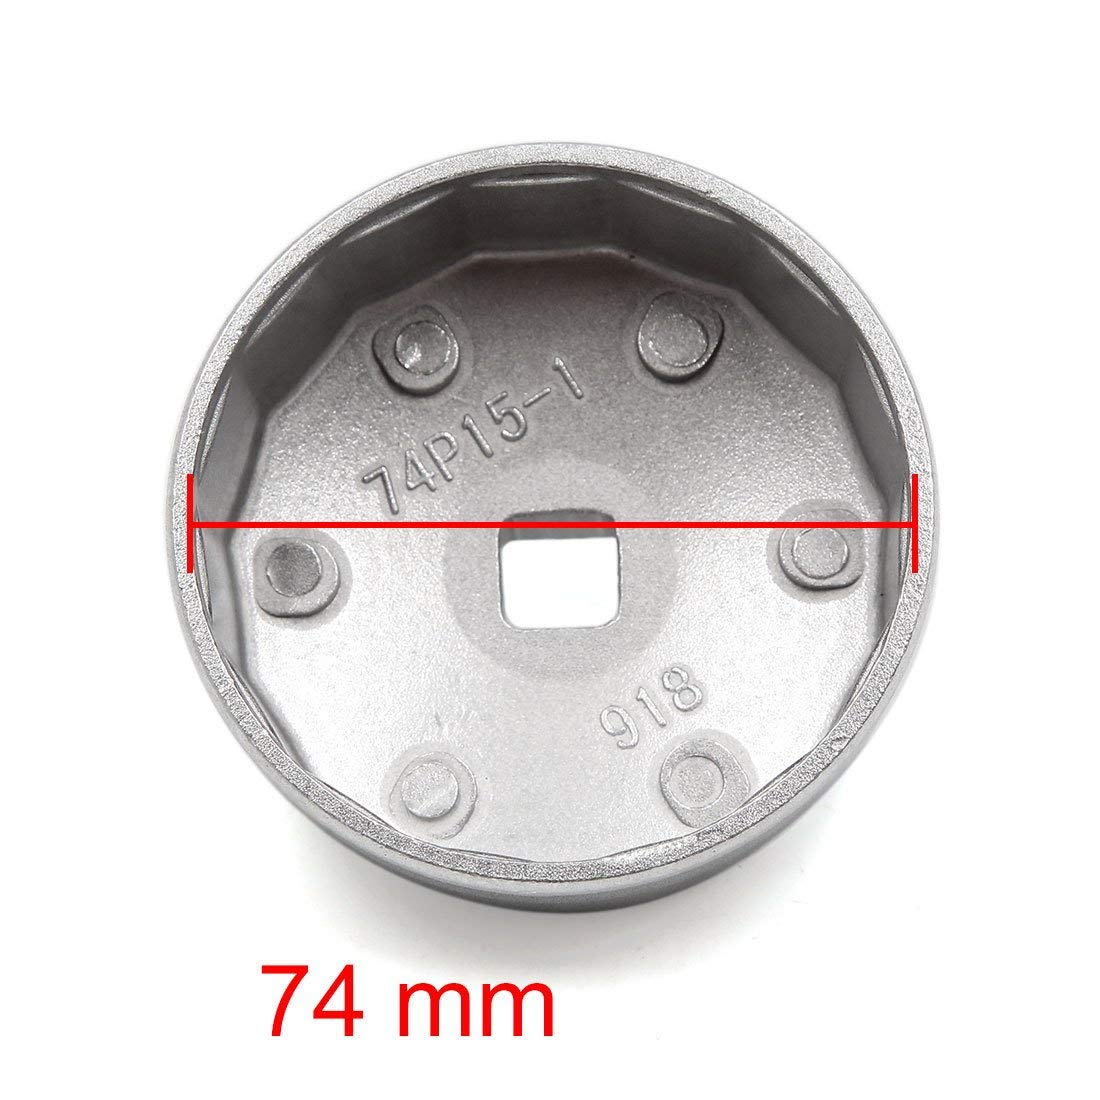 uxcell Aluminum Alloy 15 Flutes 74mm Cap Type Oil Filter Socket Wrench Tool for Car